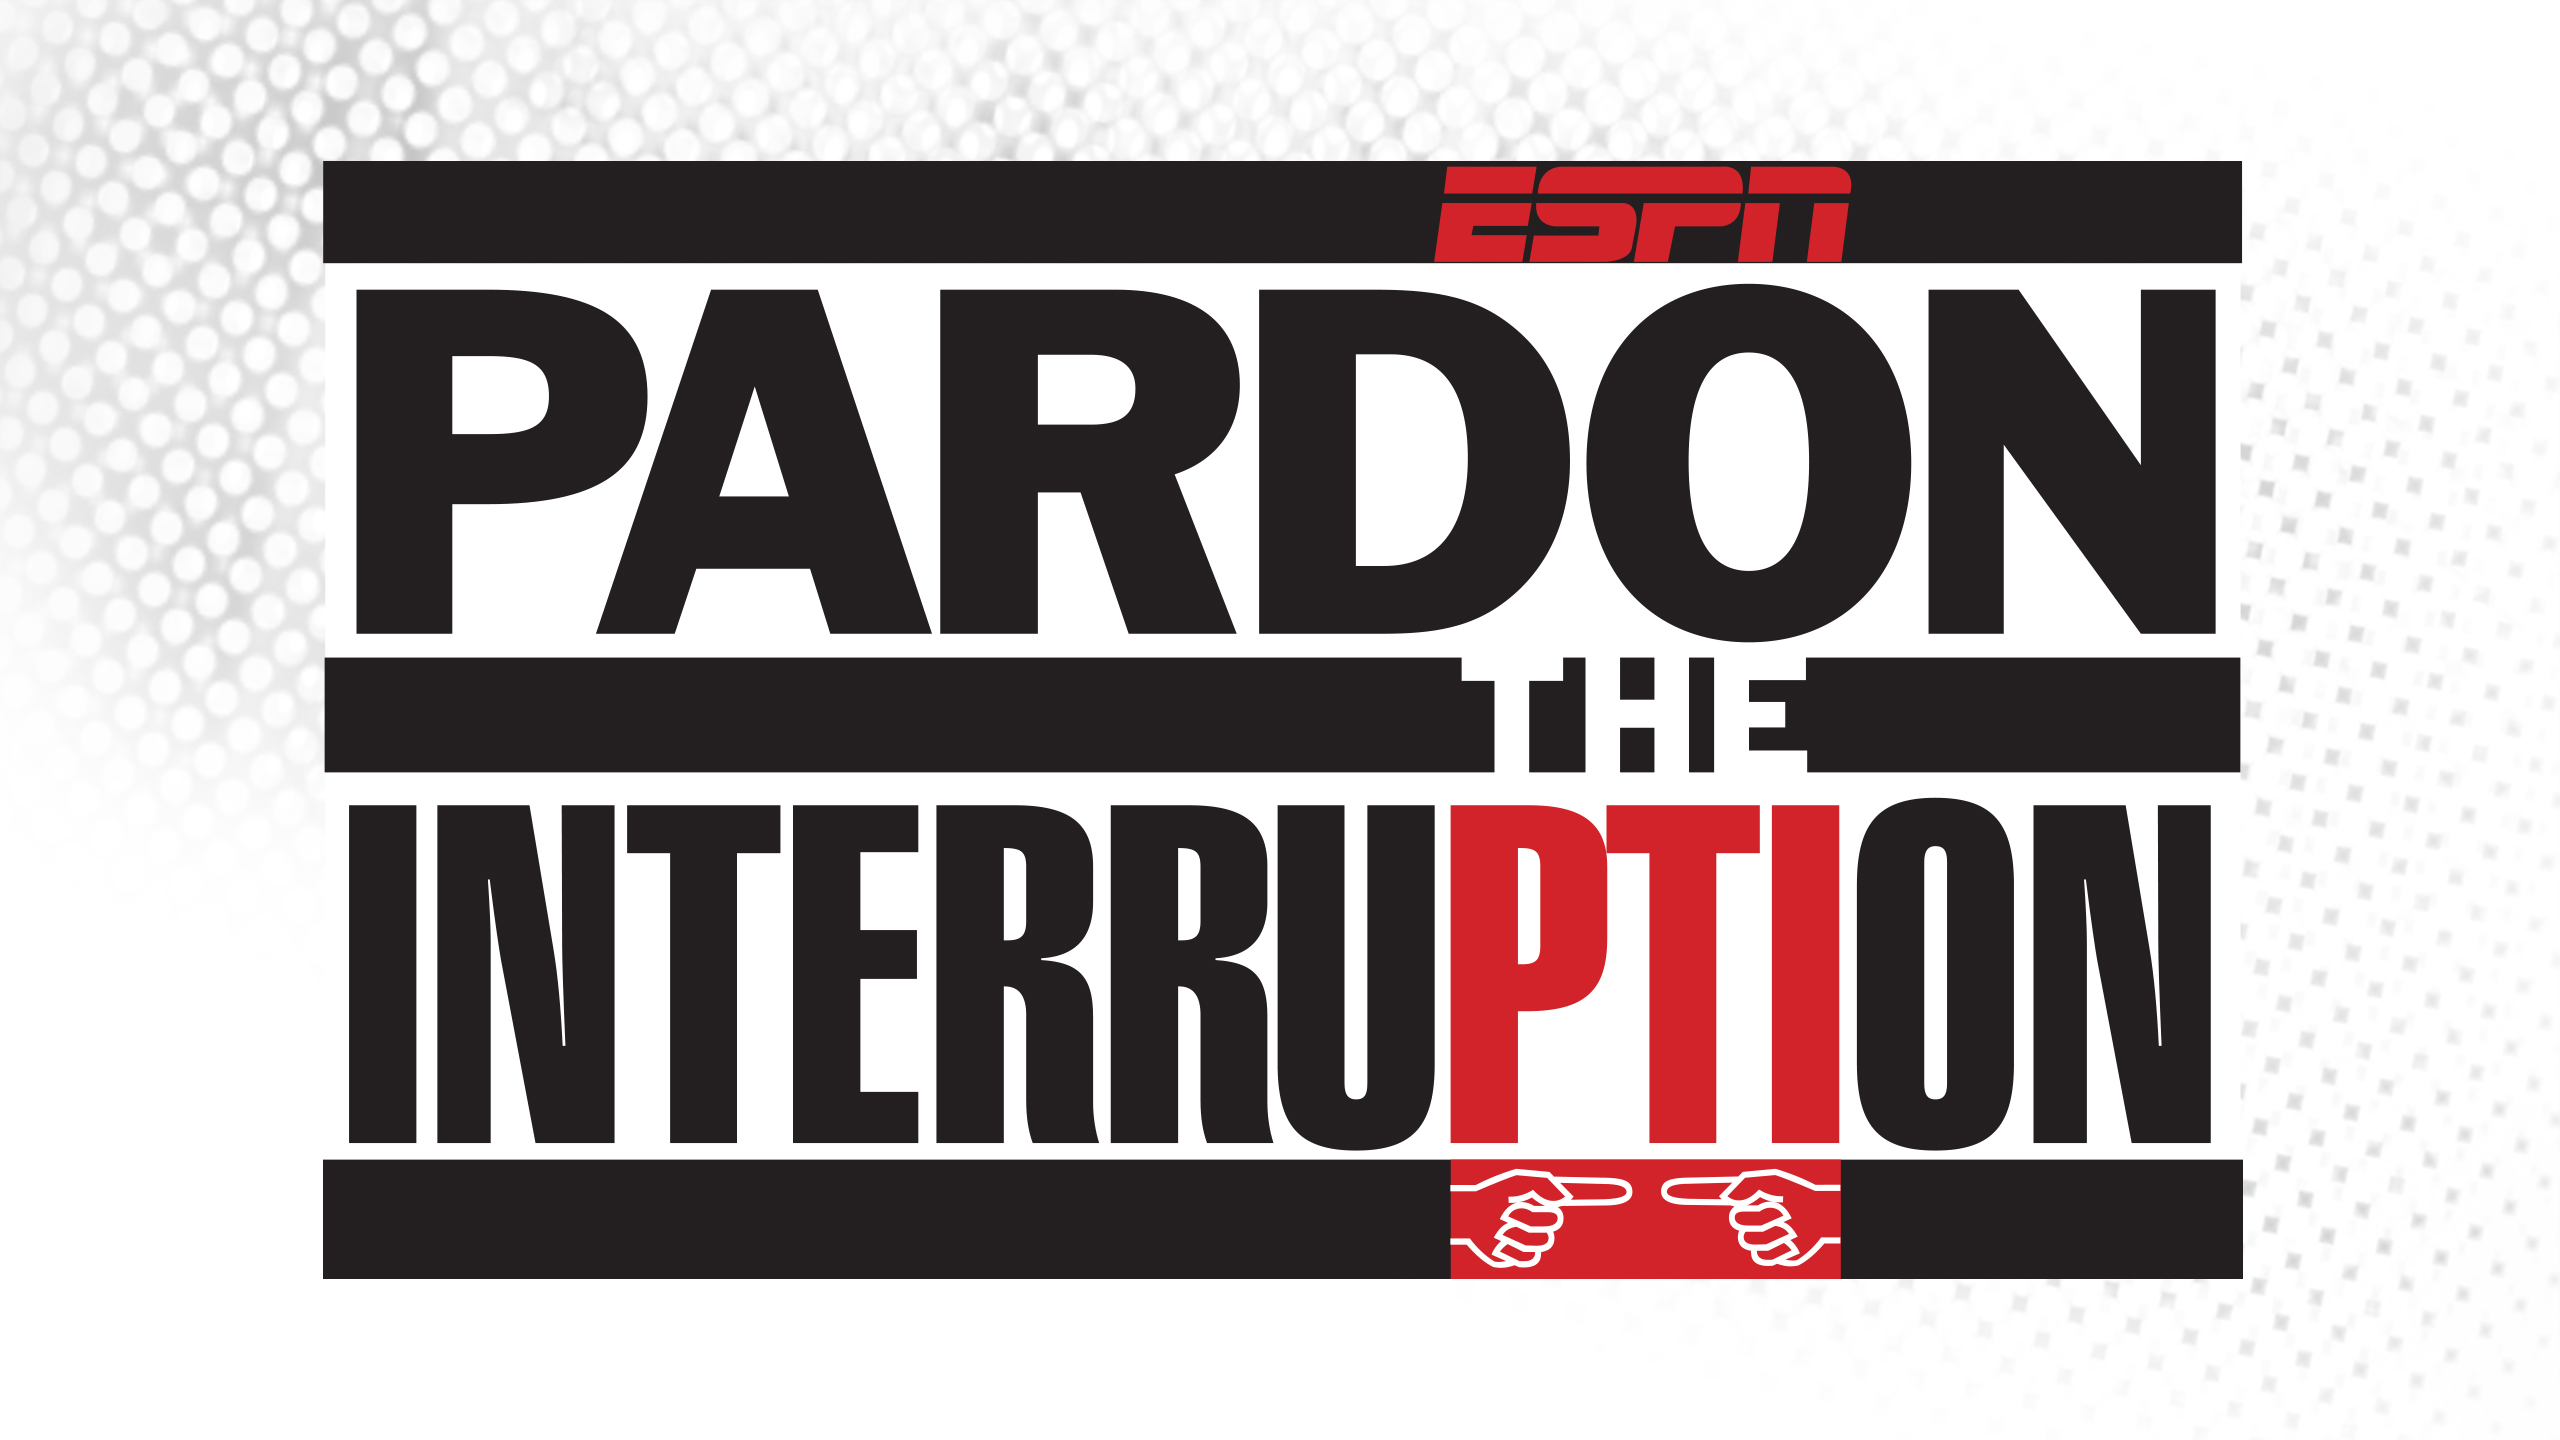 Mon, 1/21 - Pardon The Interruption